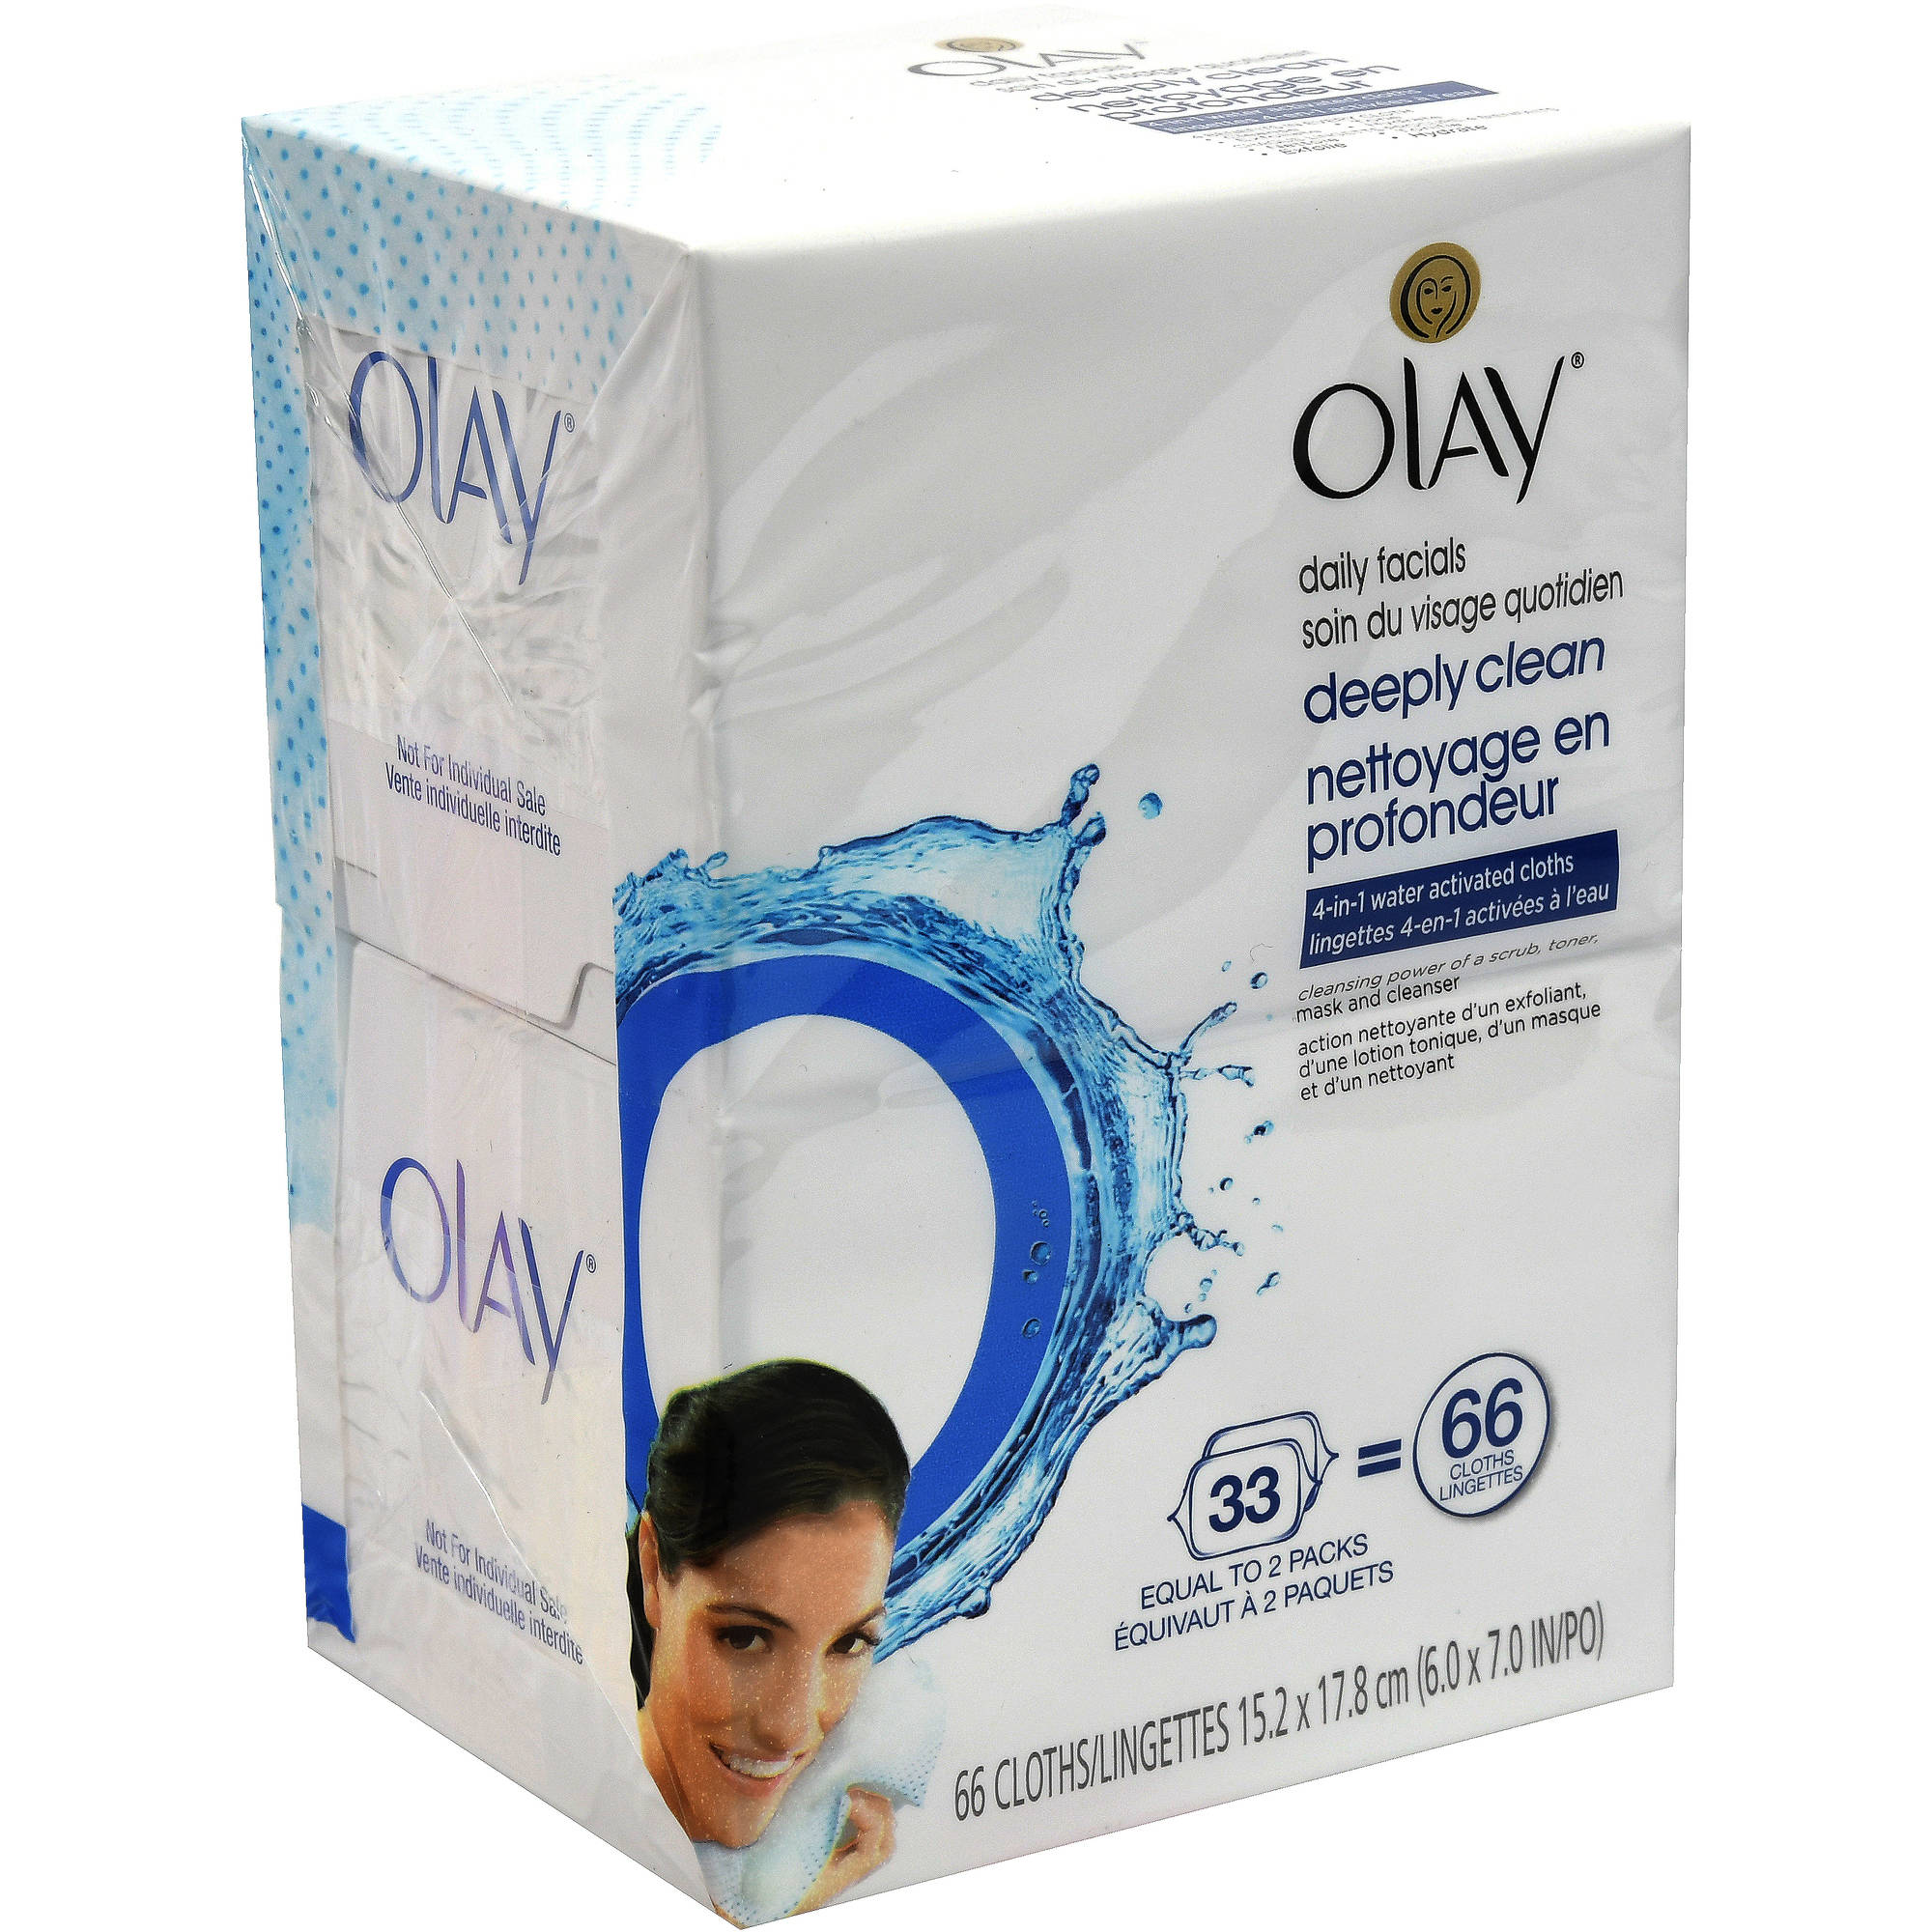 Olay 4-in-1 Daily Facial Wipes, Combination/Oily Skin, 66 count